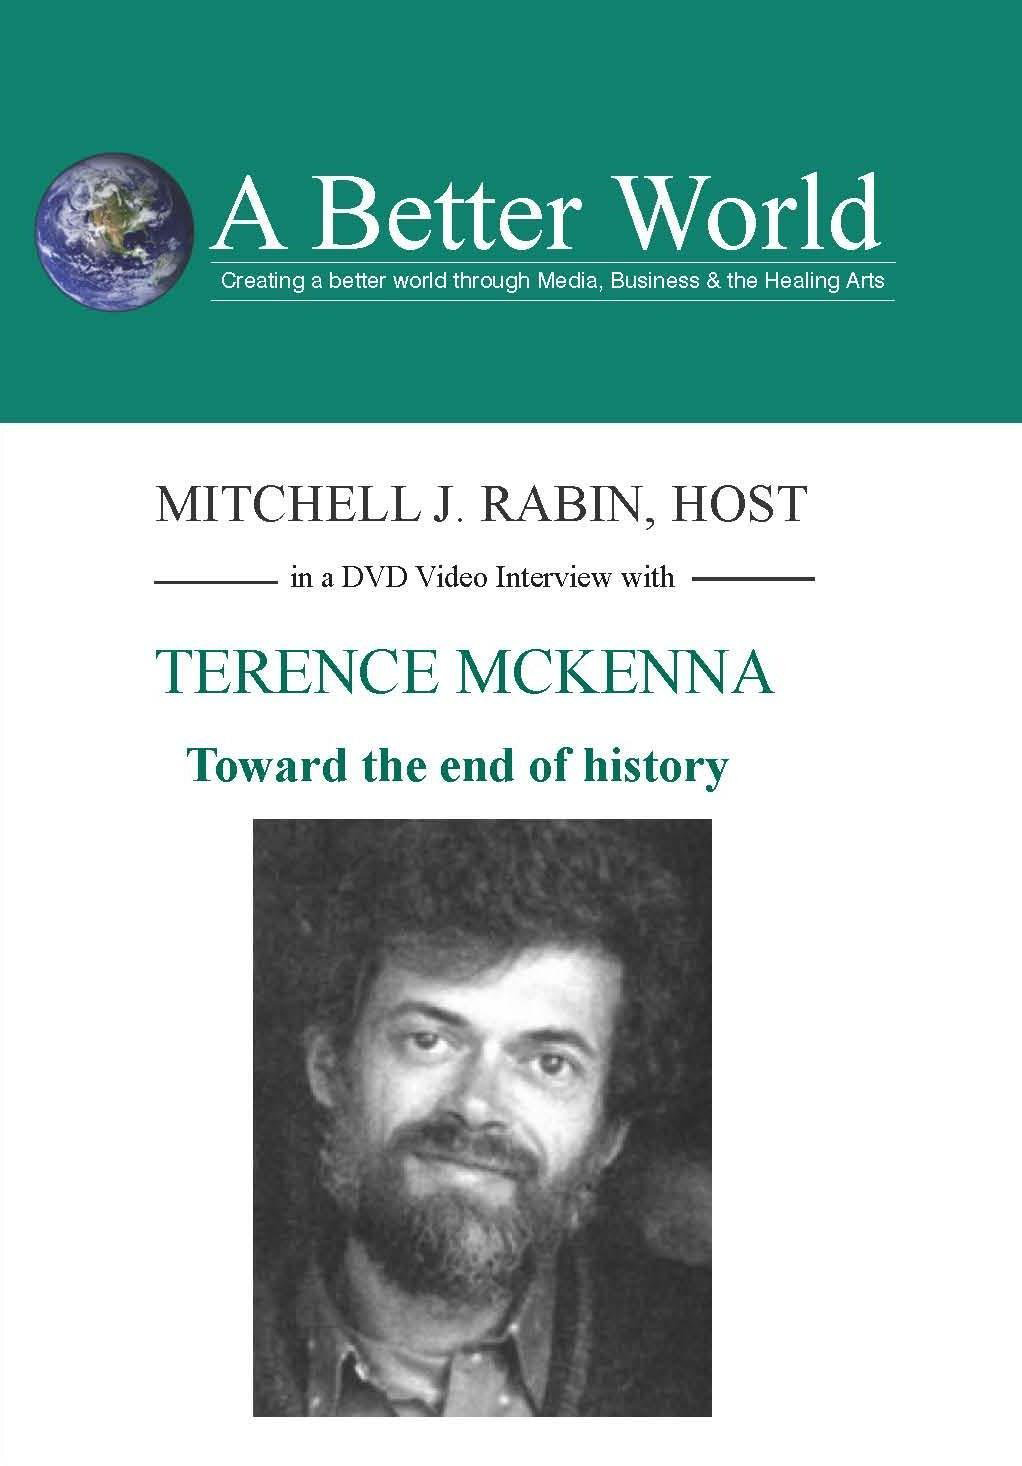 Terence McKenna: Toward the End of History